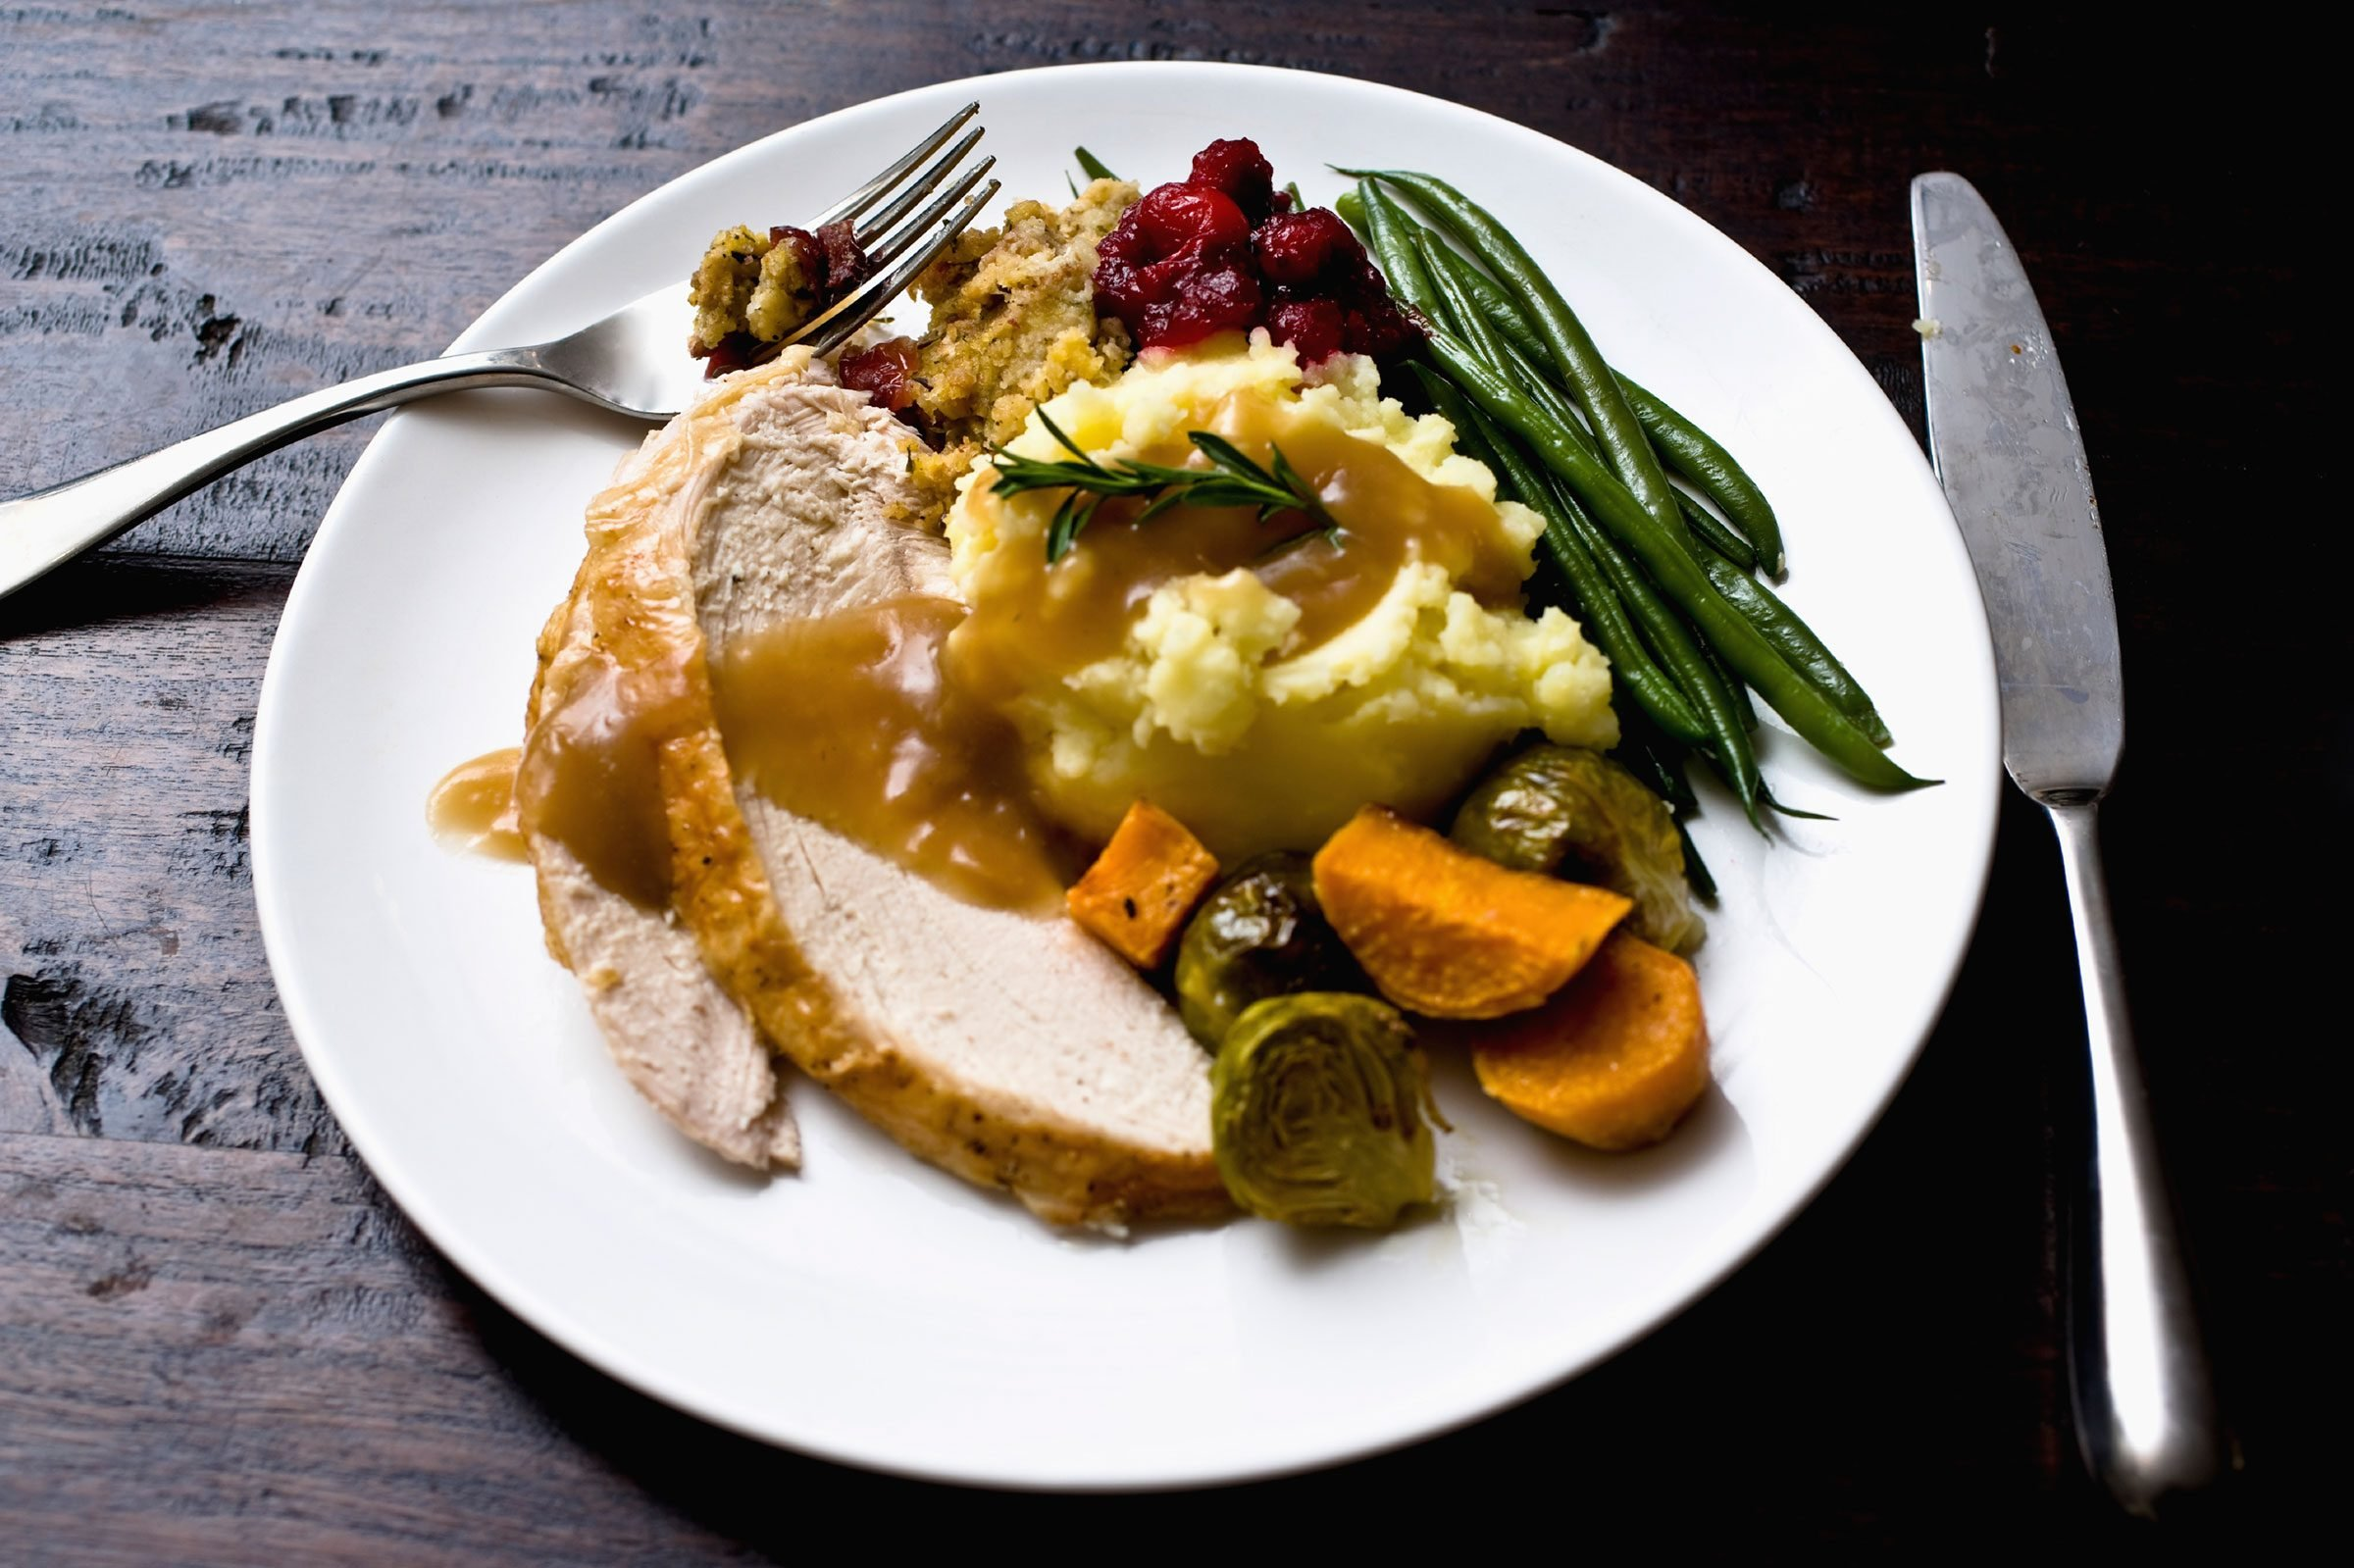 What's the best way to reheat cold turkey?